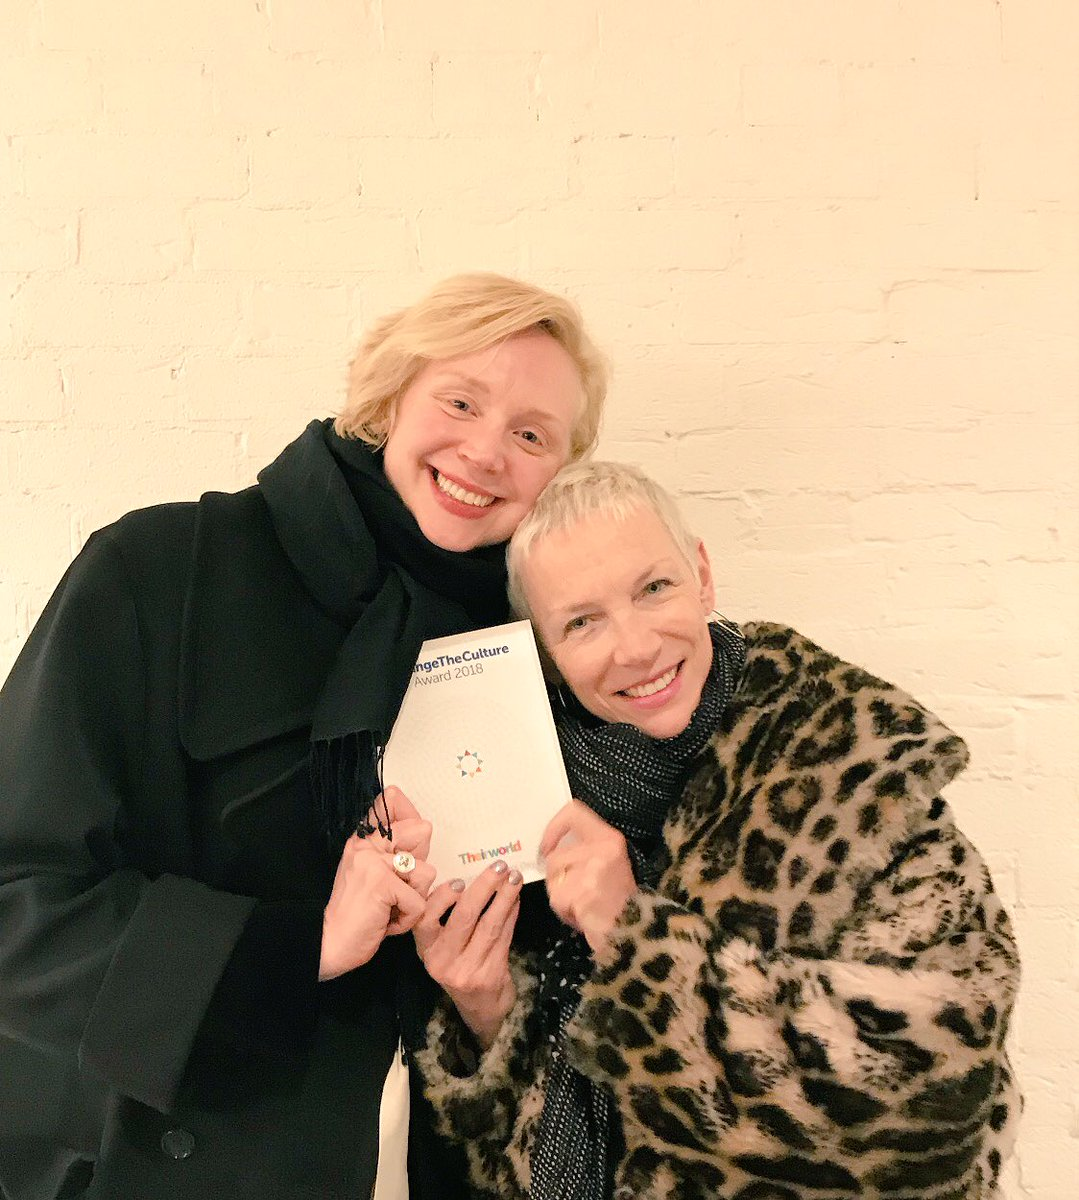 Dreams can come true.  ❤️@AnnieLennox @TheCircleNGO #changetheculture @theirworld https://t.co/bNzxBoDSn3